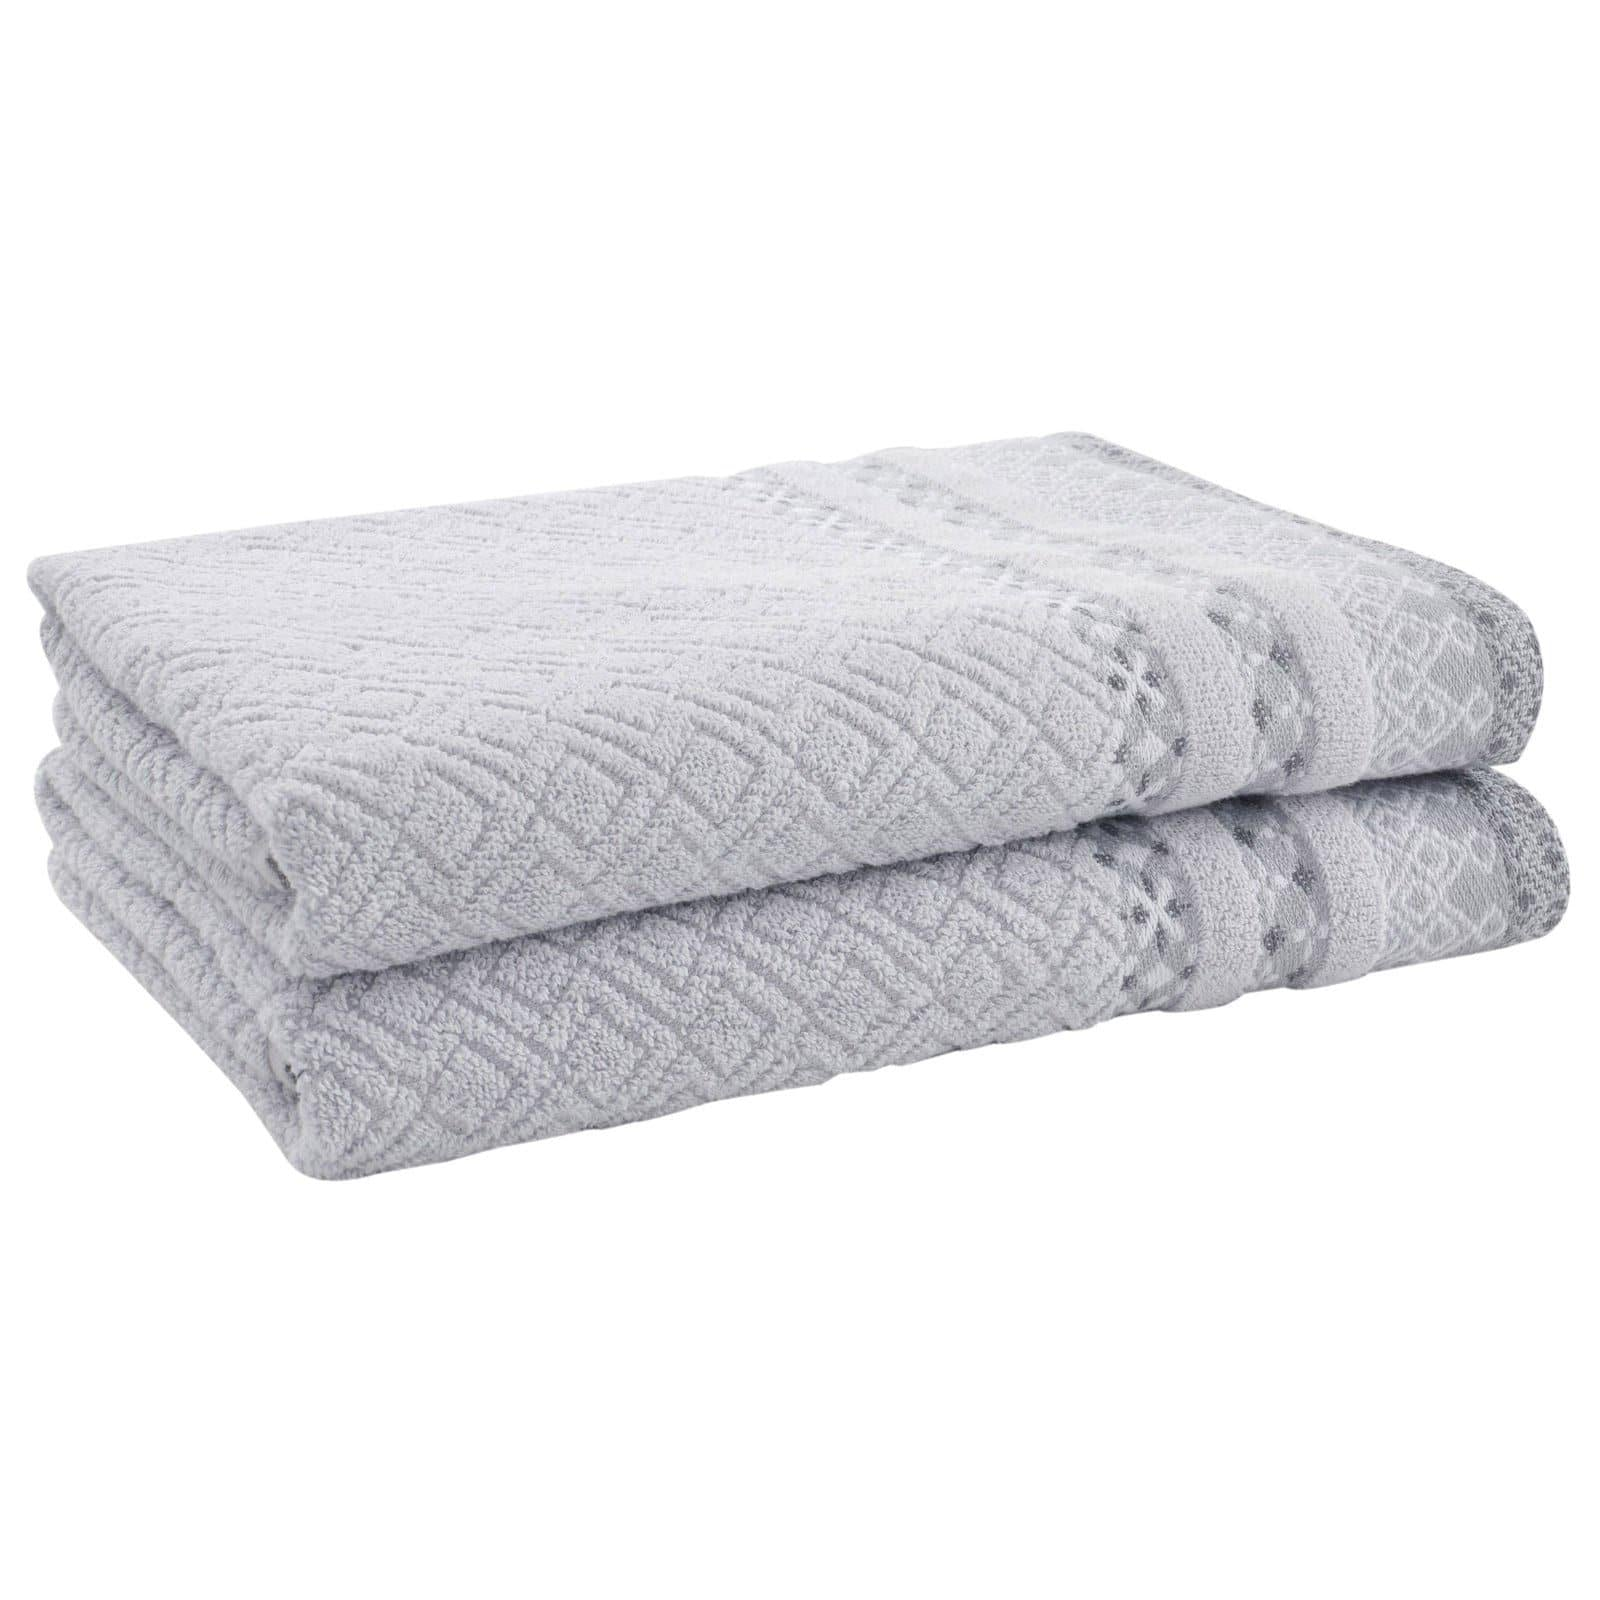 Malawa Geo Grey 2 Piece Towel Sets - Bath Towels - Ideal Textiles